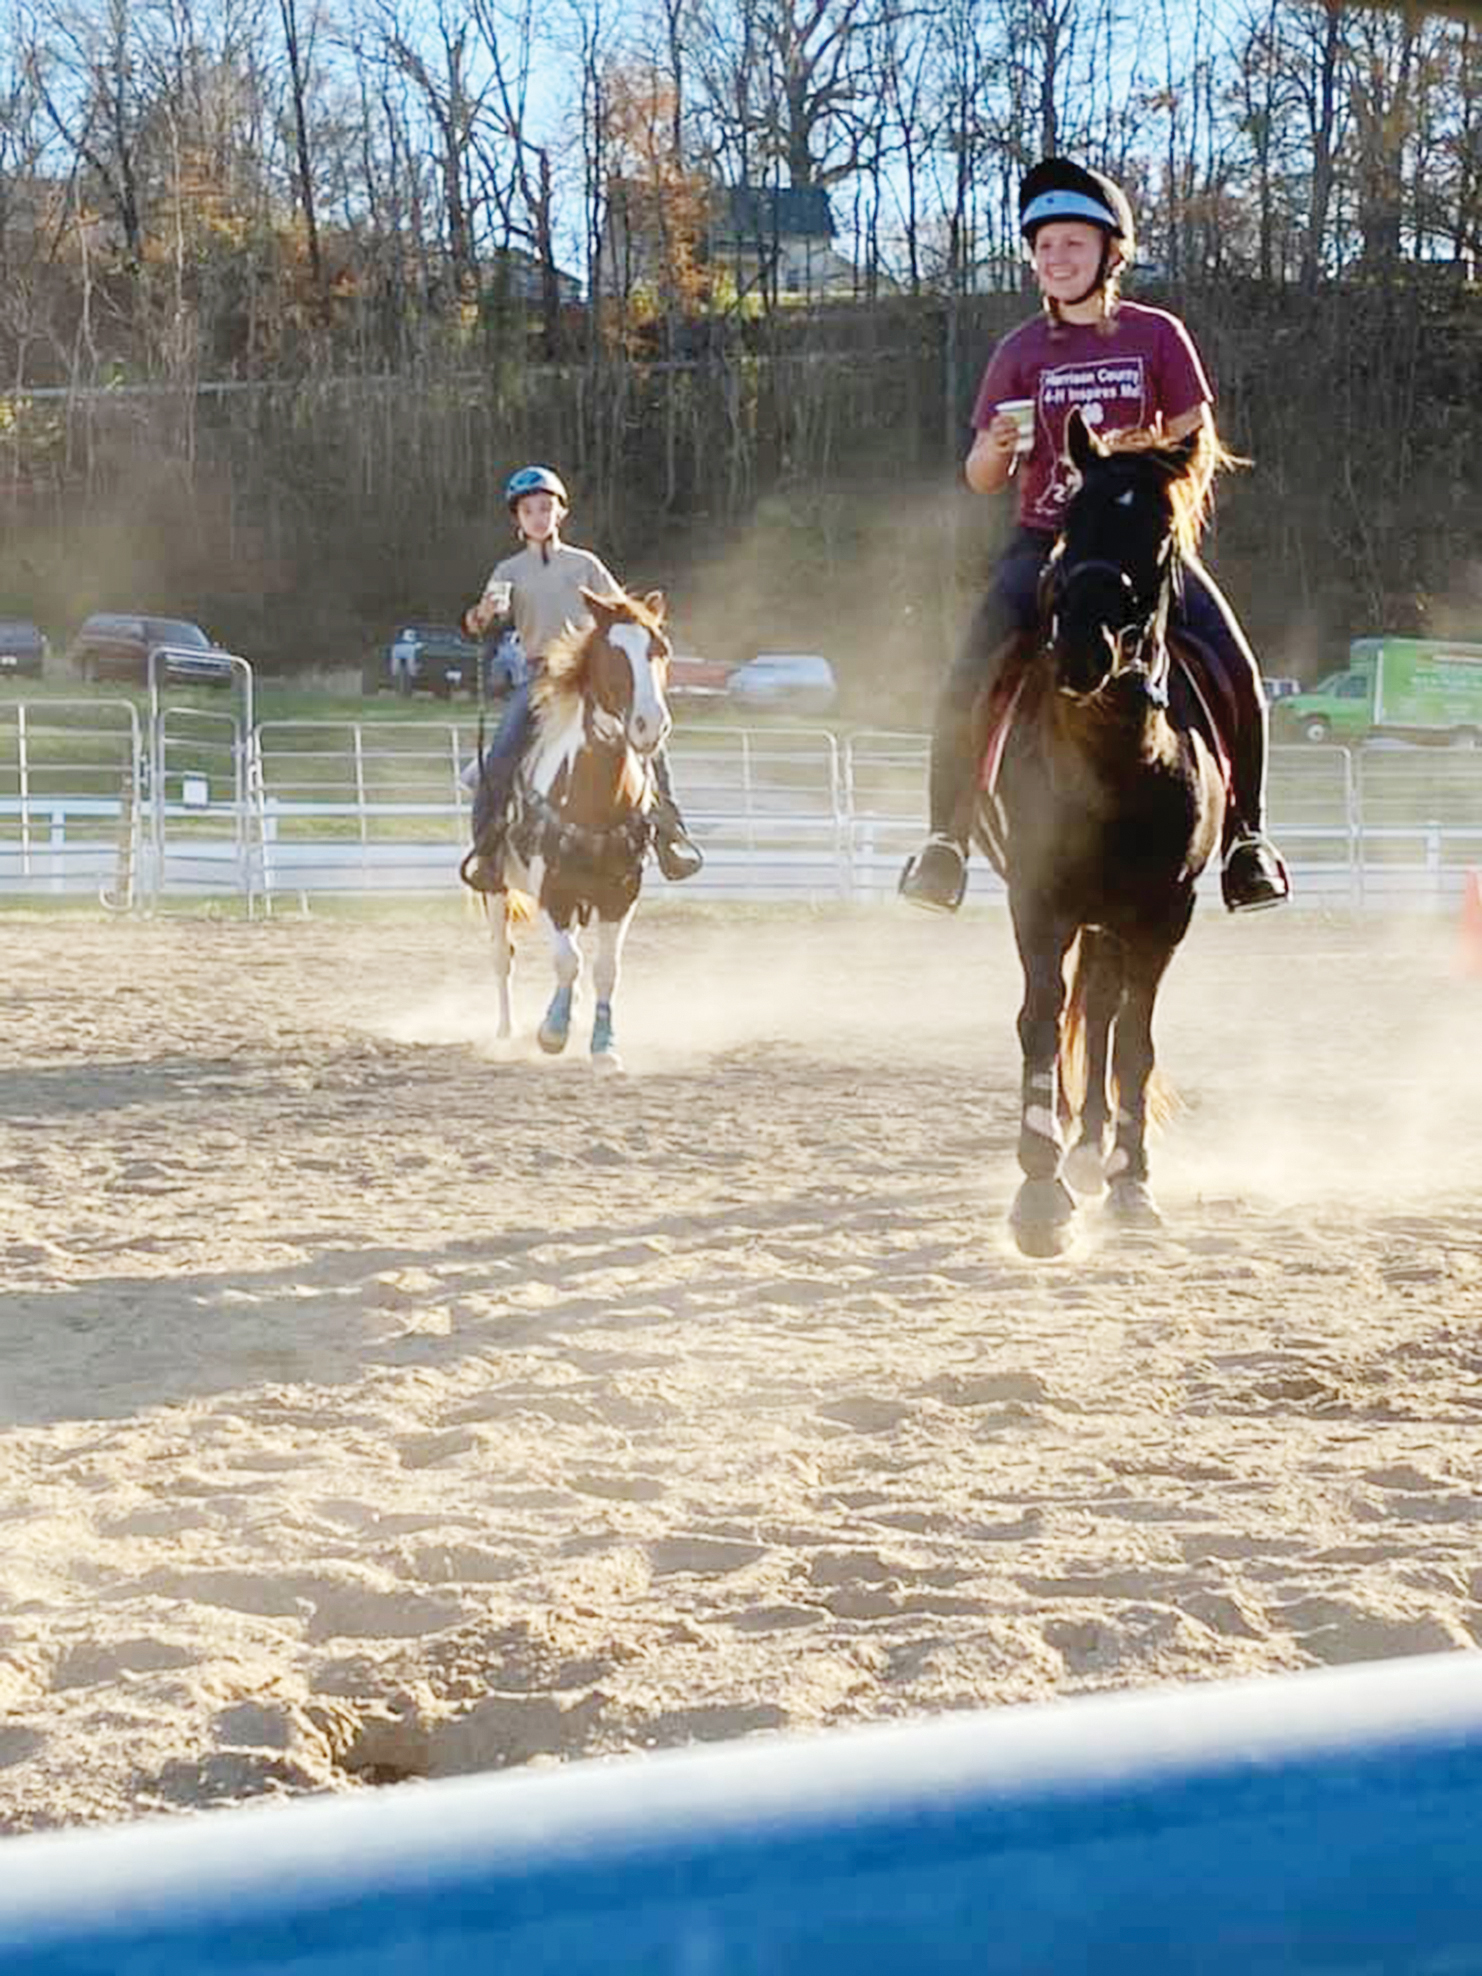 4-H Fun Show offered event for project participants